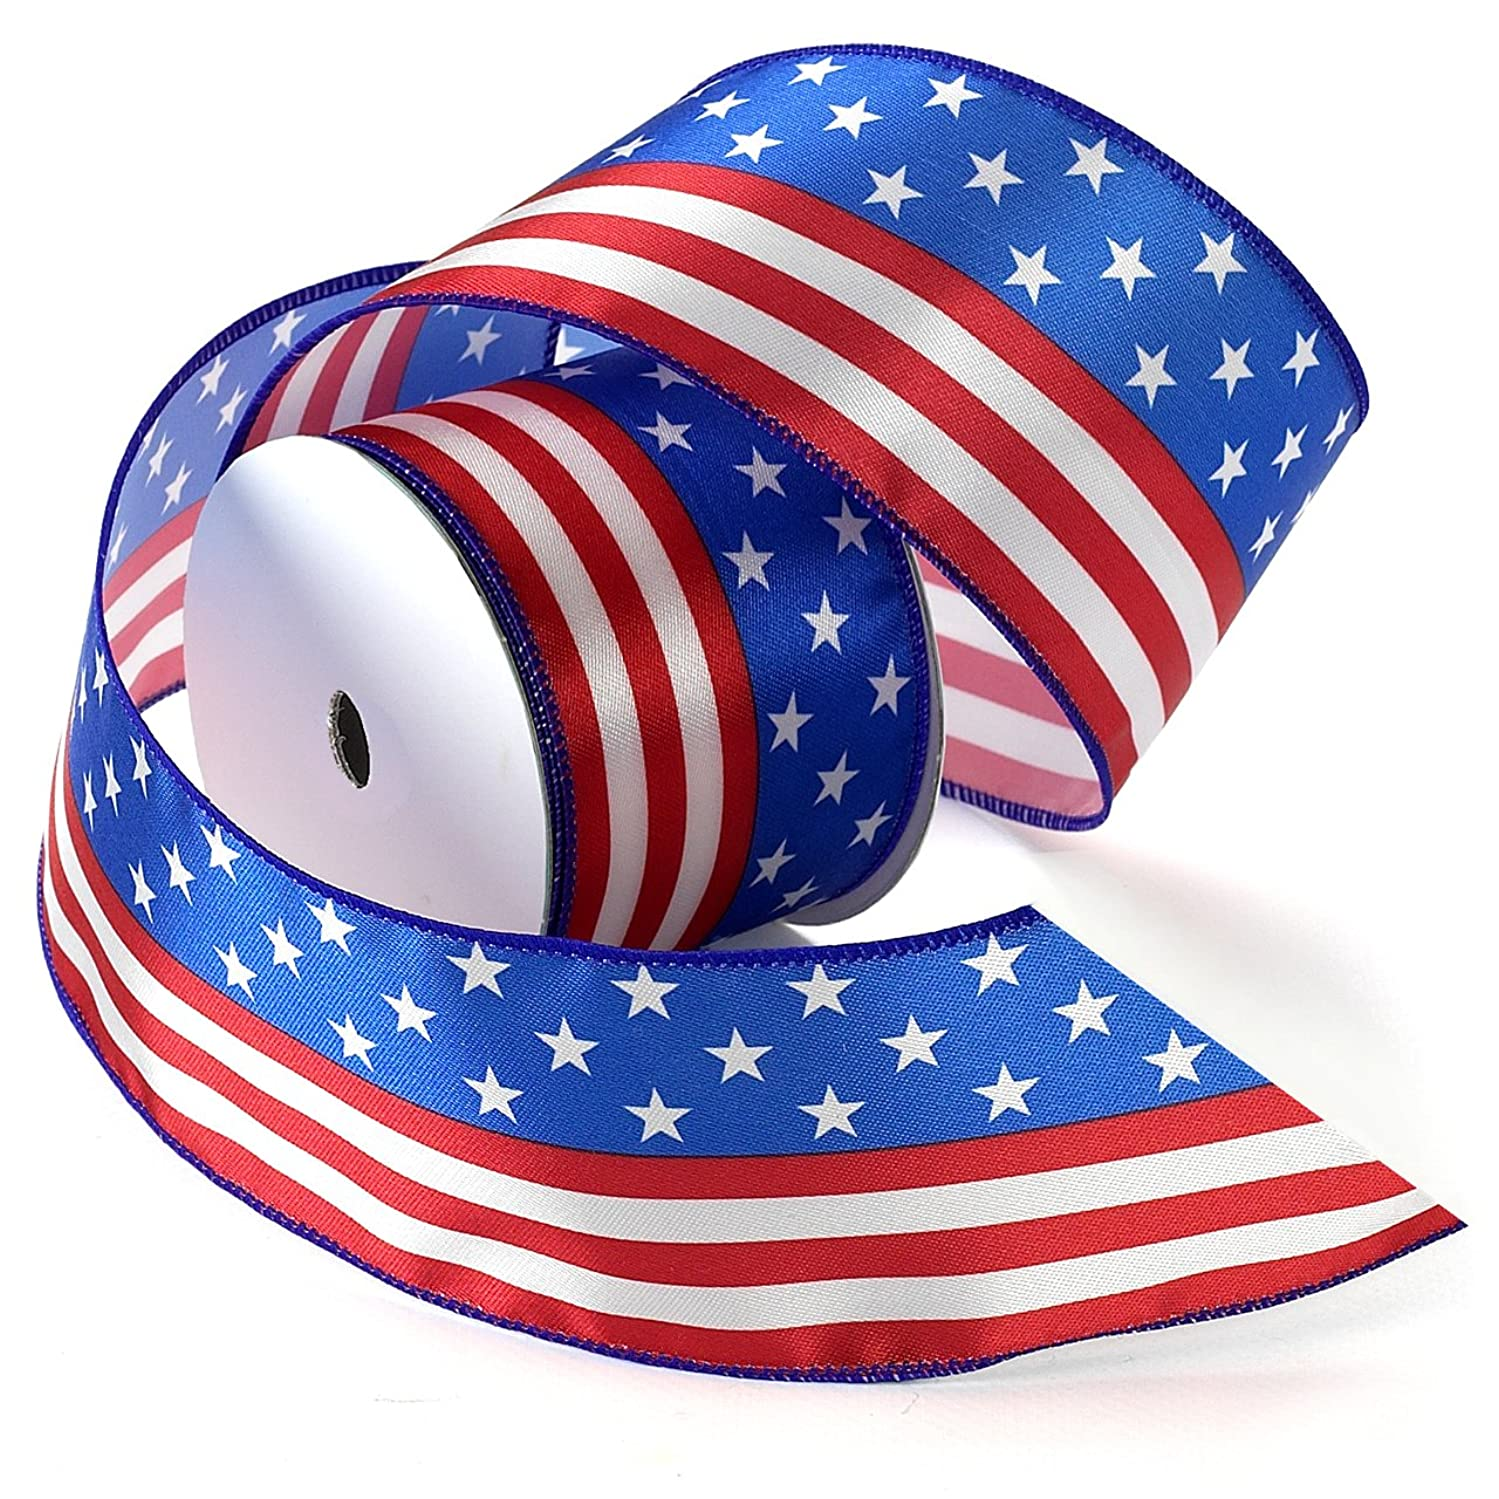 Morex Ribbon Stars and Stripes Wired Satin Ribbon Spool, 2-1/2-Inch by 3-Yard, Red/White/Blue